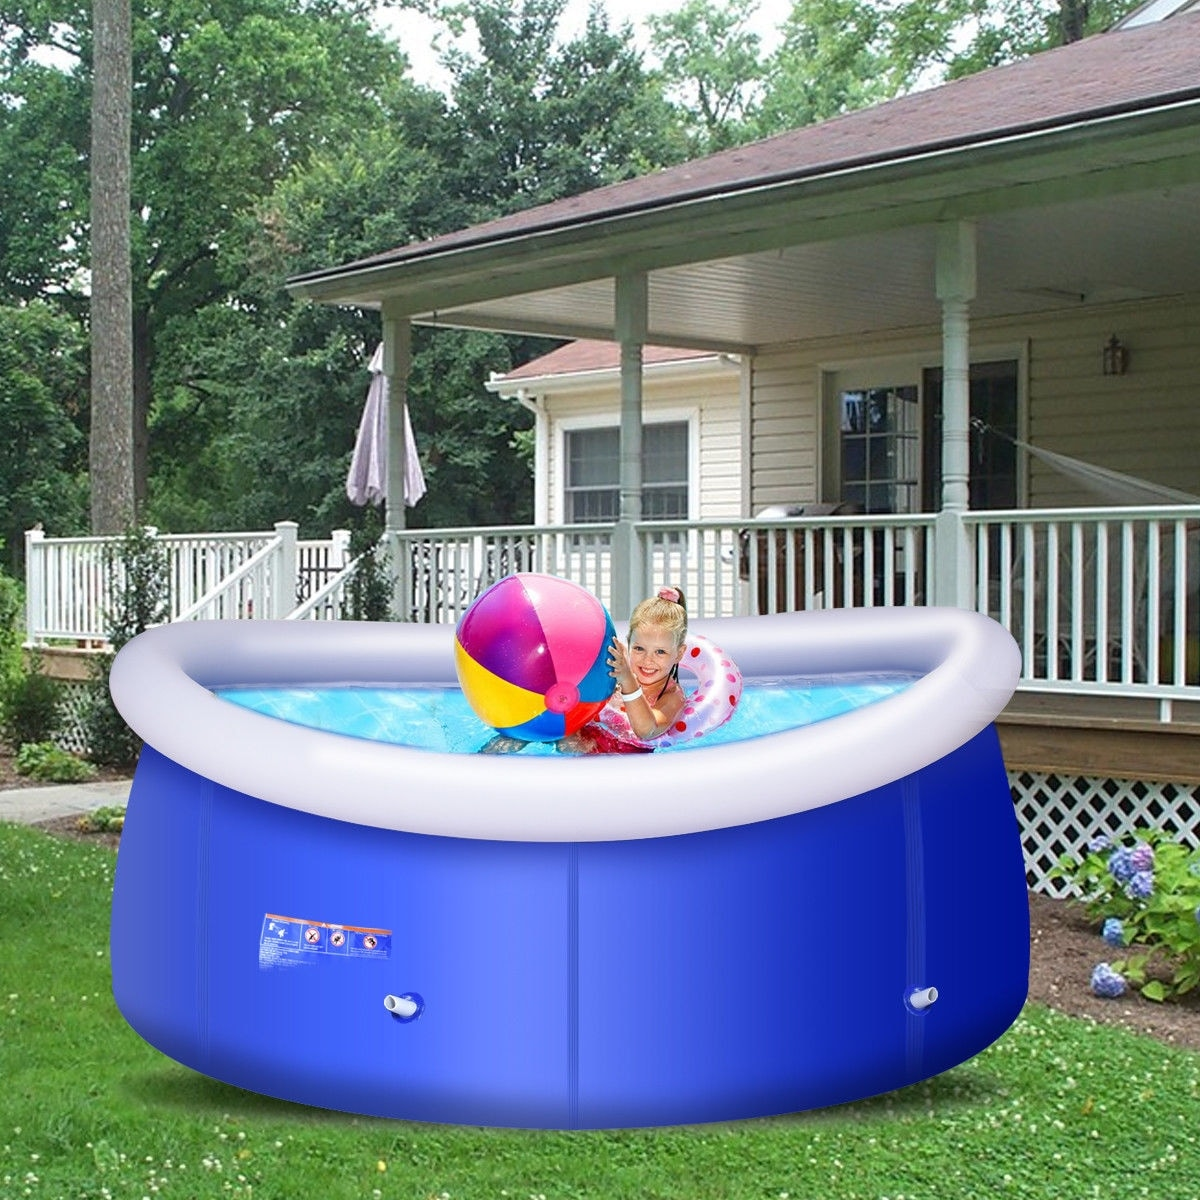 Shop Costway Giant Inflatable Above Ground Swimming Pool 8FT x ...